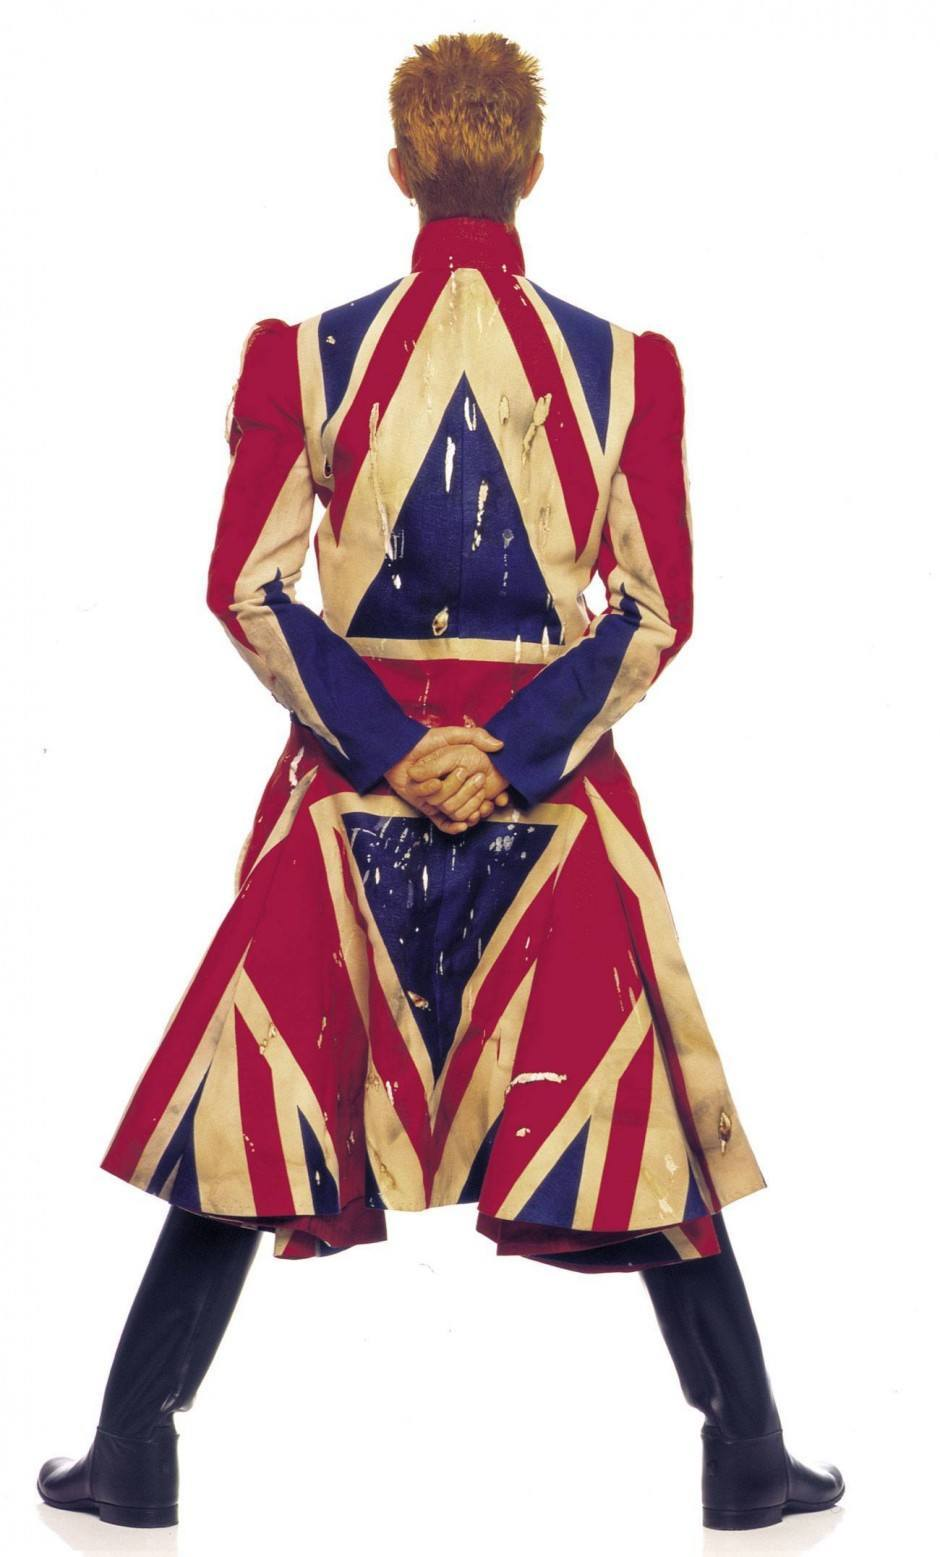 Union Jack coat designed by Alexander McQueen in collaboration with David Bowie, Photograph by Frank W Ockenfels 3